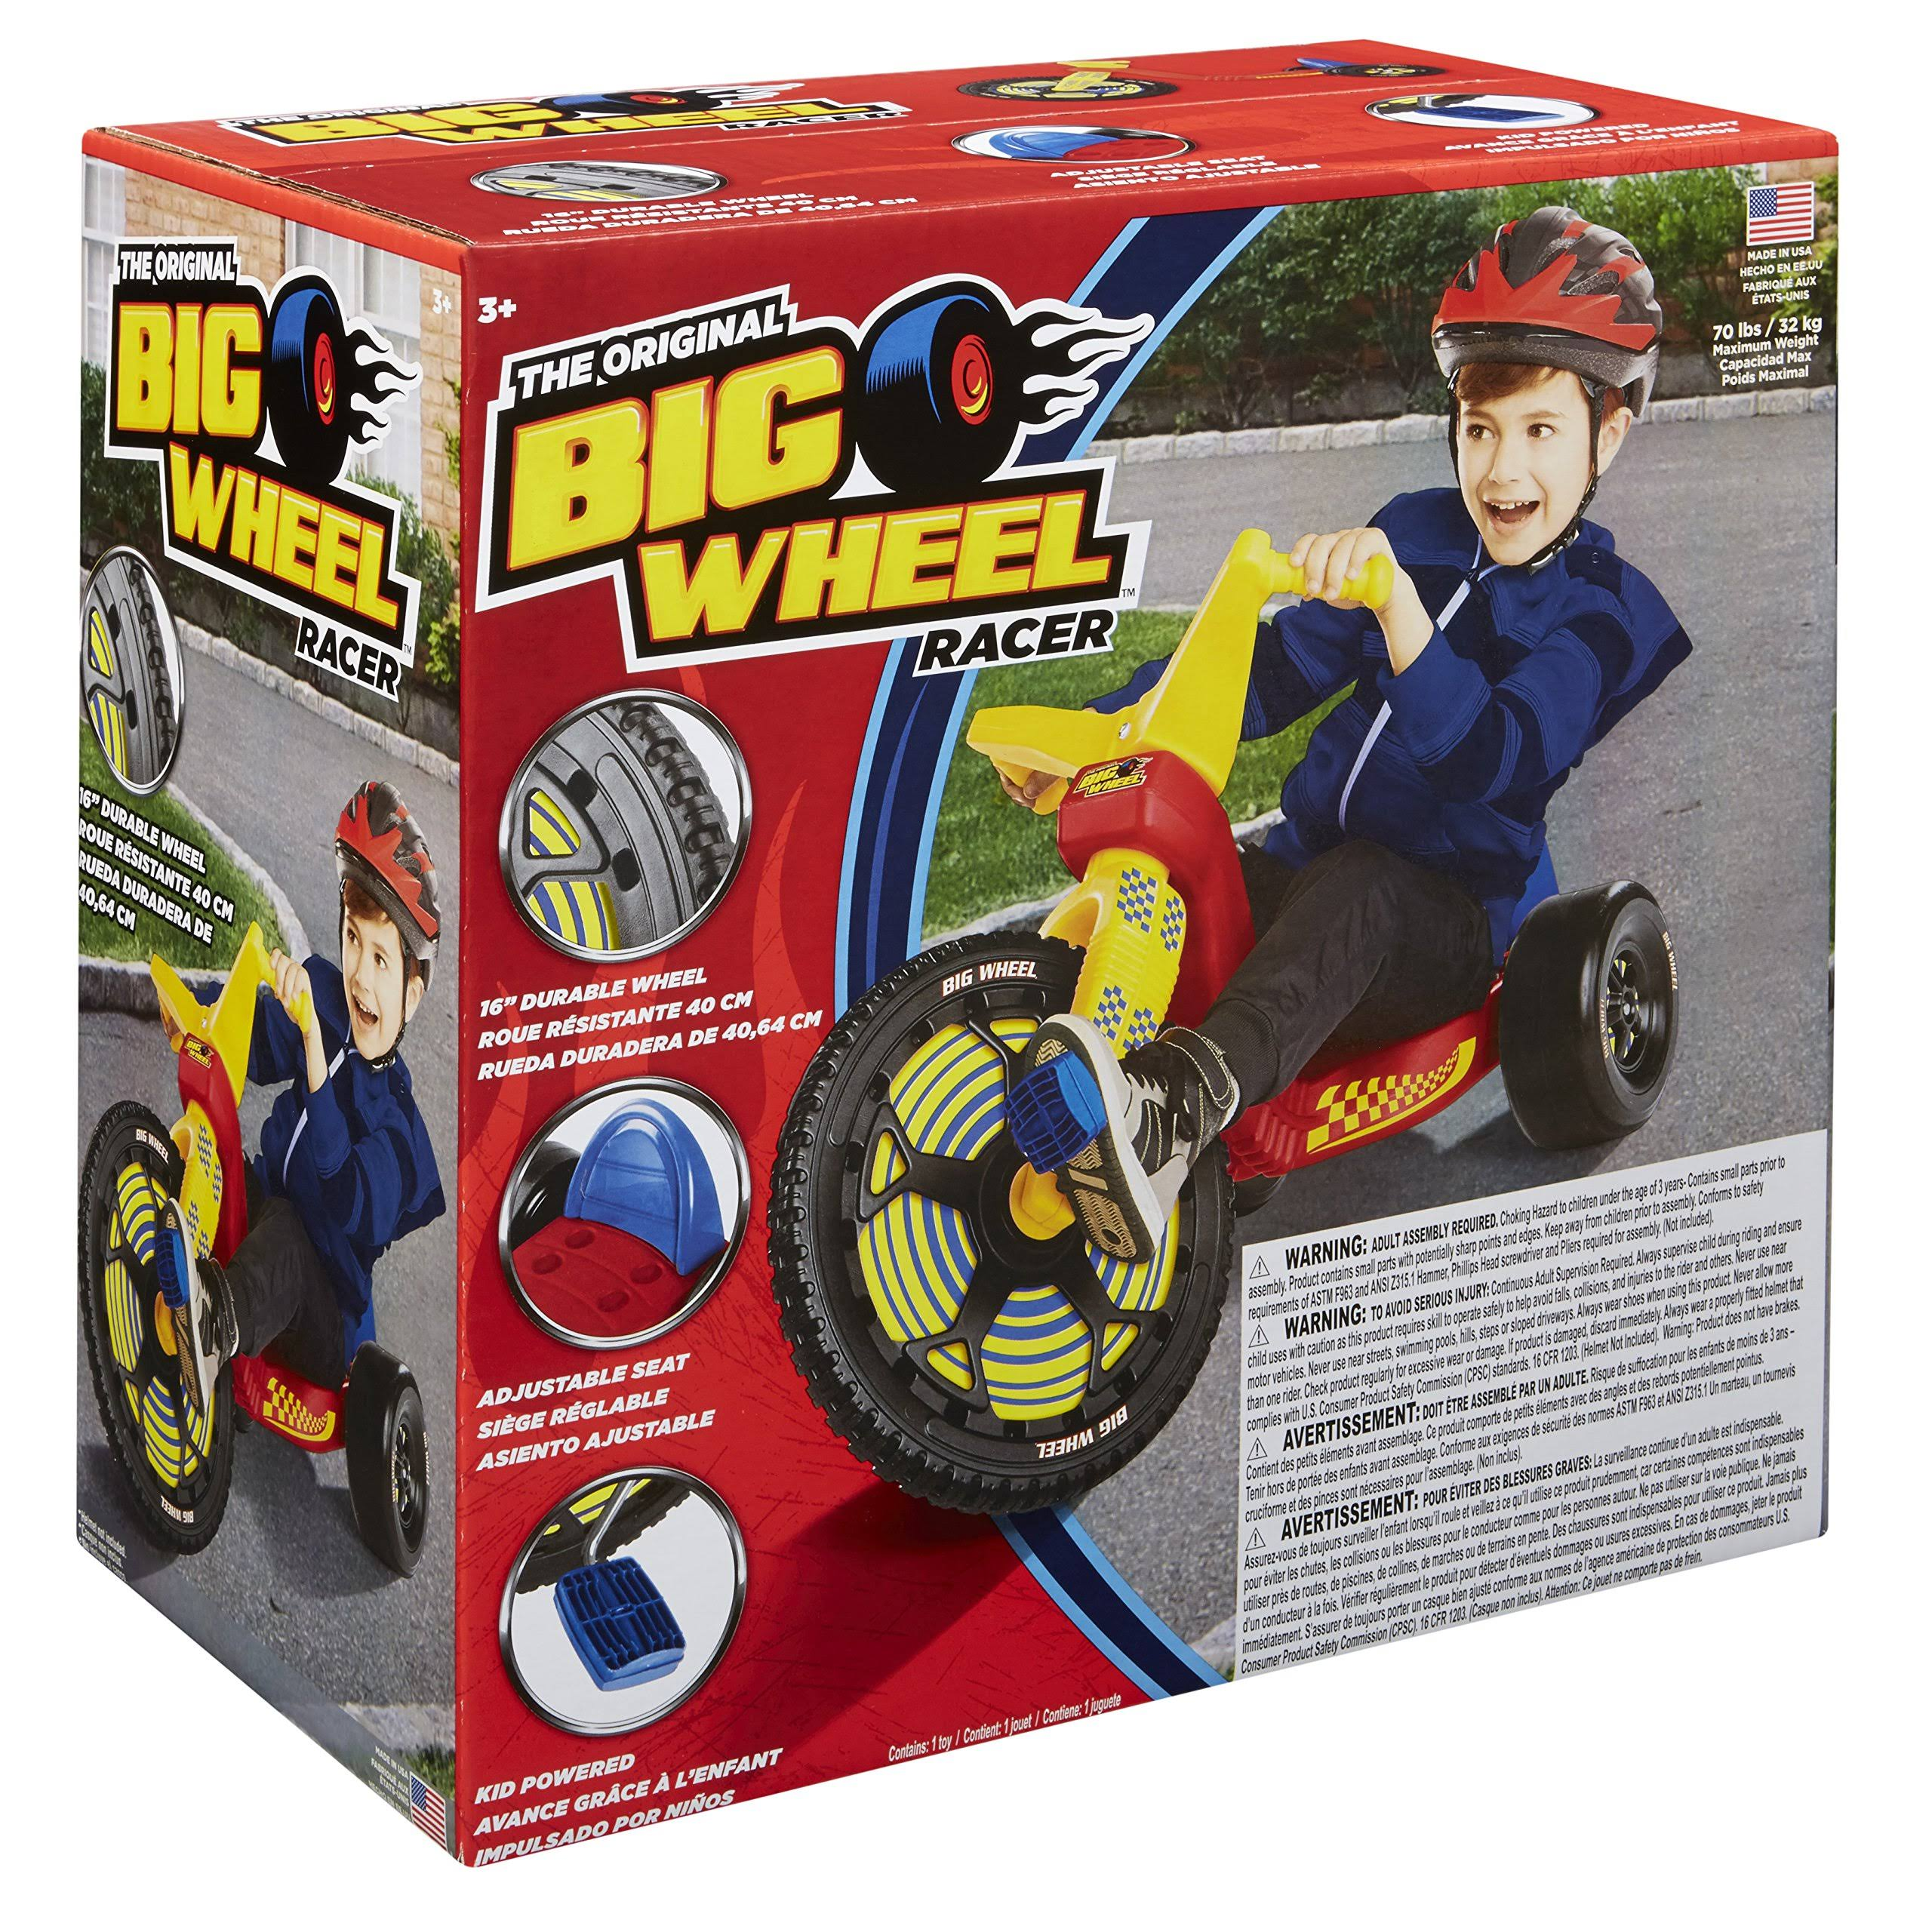 "The Original Big Wheel - 16"" Racer Classic"